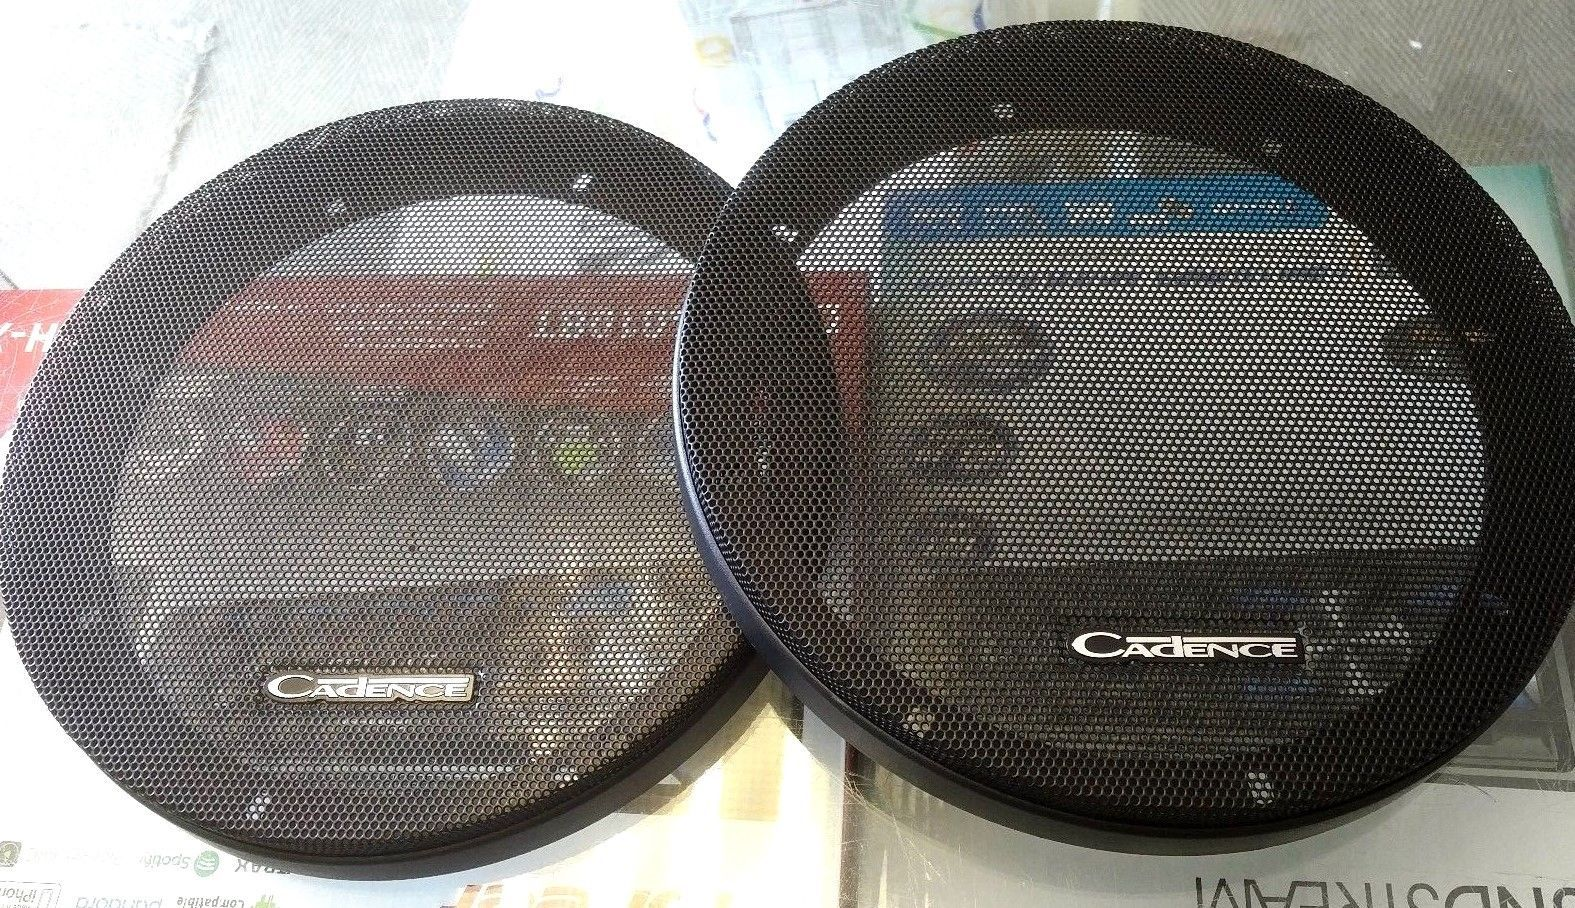 2 UNIVERSAL Cadence 8 inch 2 pc speaker / mid bass / woofer  grills